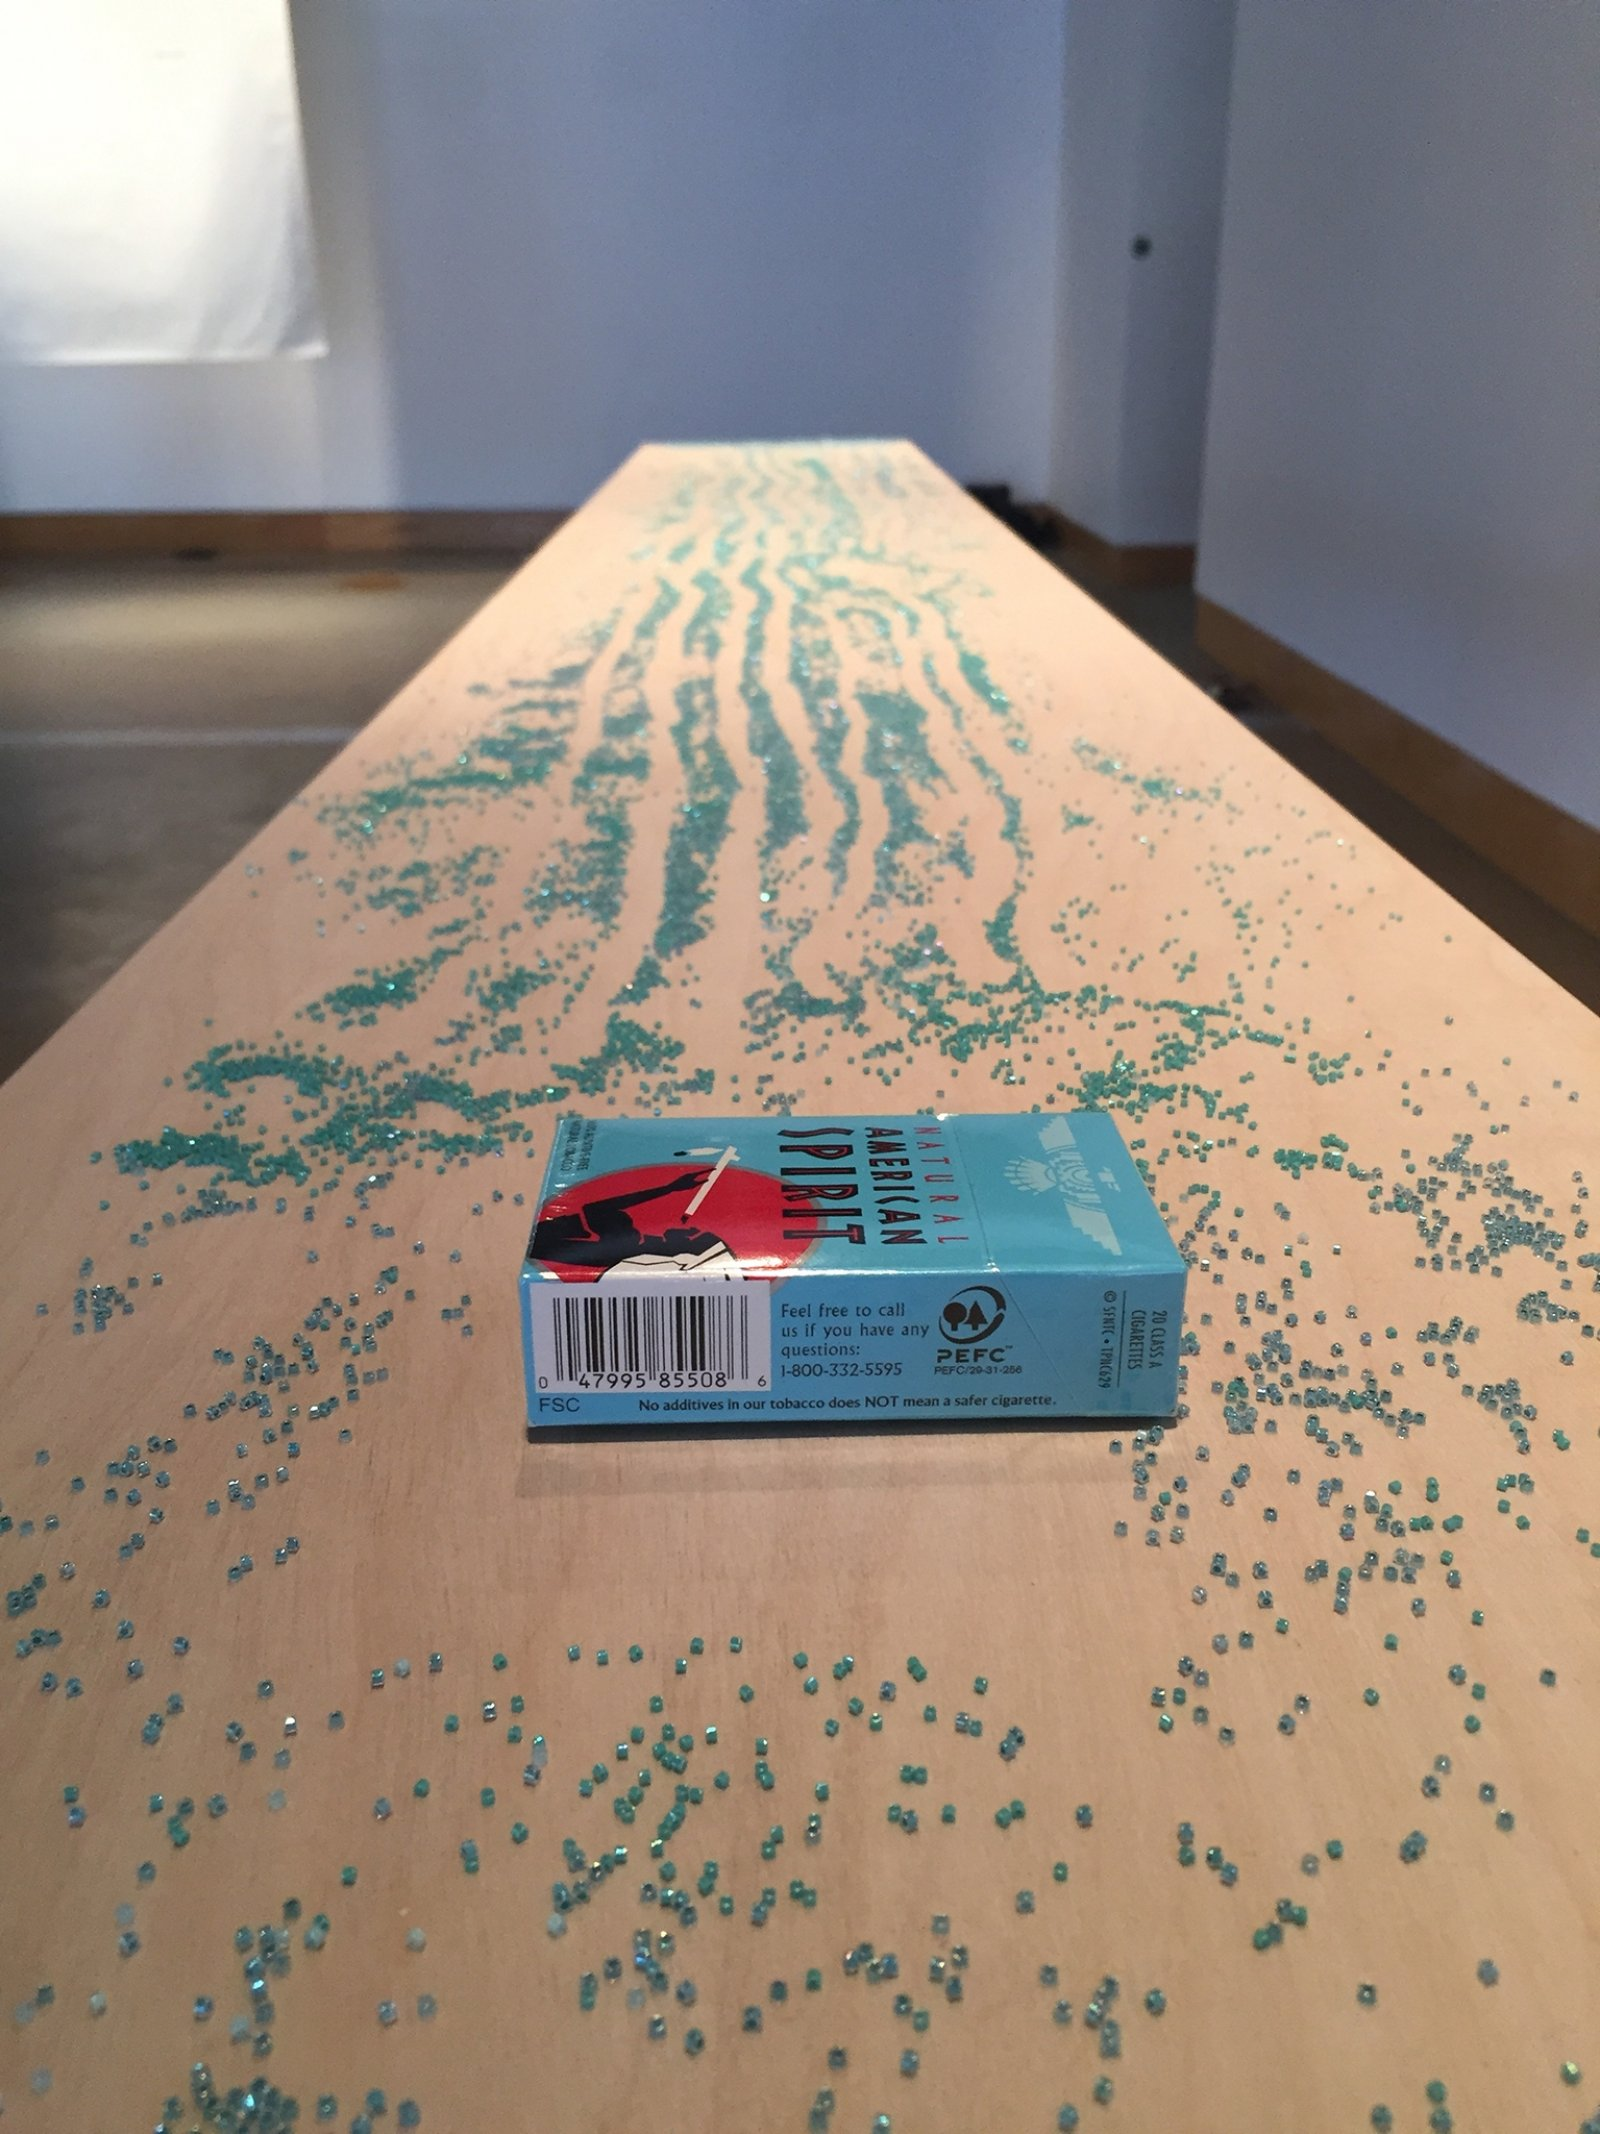 Tanya Lukin Linklater, Slow Scrape and the Harvest Sturdies, 2015–2017, tables, beads, American Spirit cigarettes, crushed charcoal, each table 29 x 96 x 13 in. (74 x 244 x 33 cm). Installation view, The Harvest Sturdies, All My Relations Arts, Minneapolis, USA, 2017